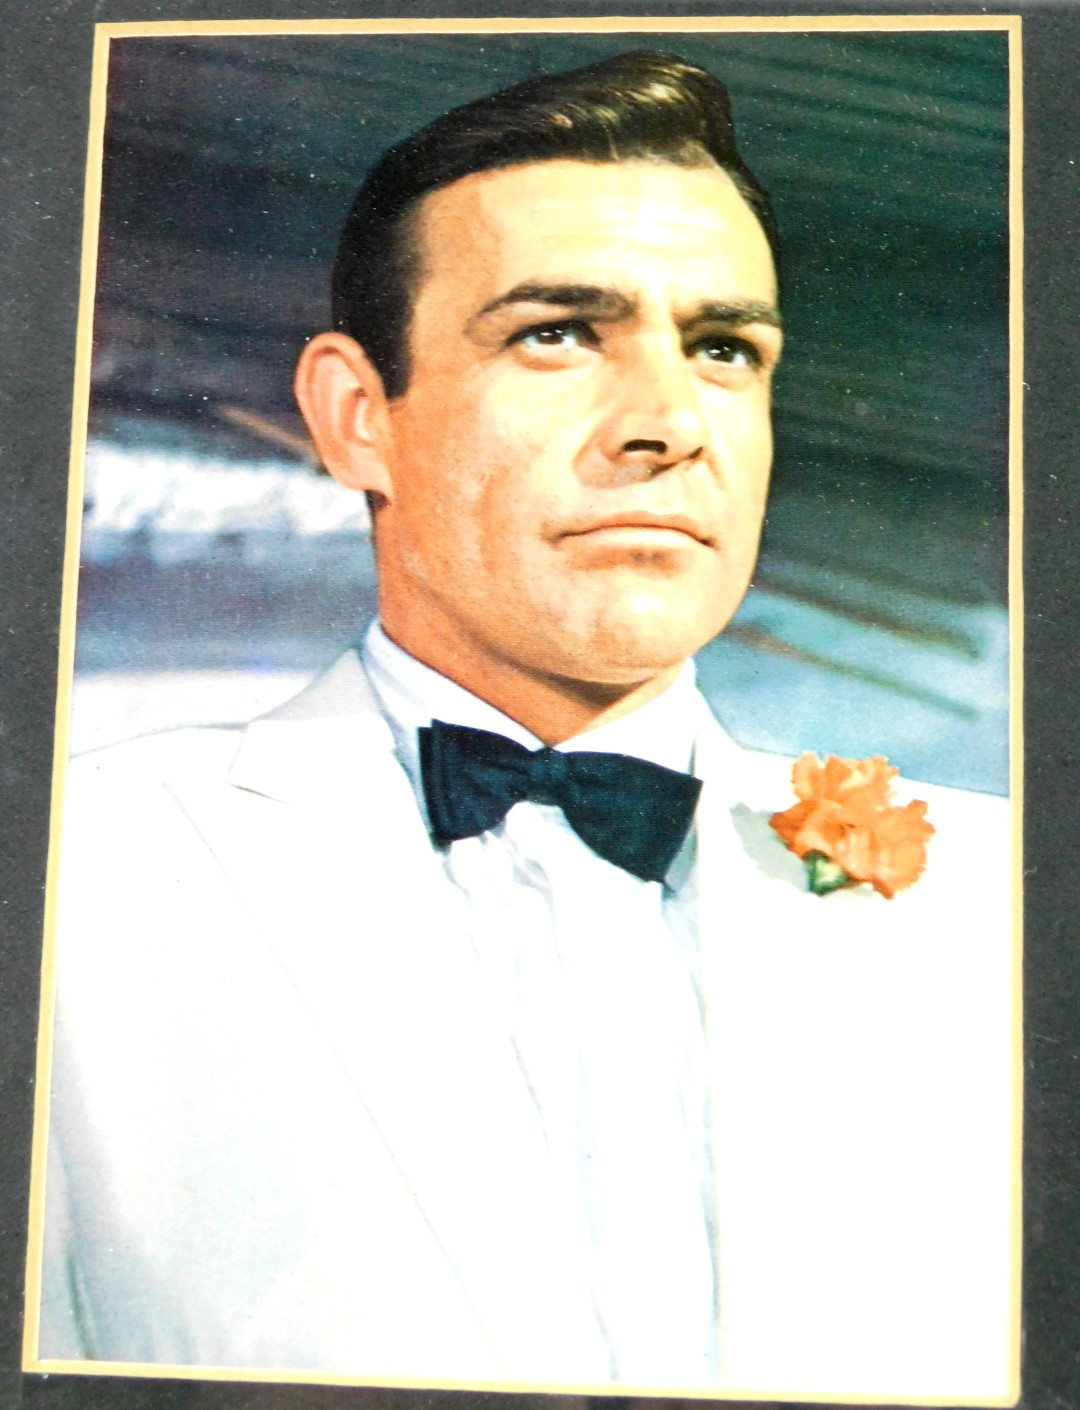 Lot 1 - Sean Connery & James Bond Interest. A framed Sean Connery autograph with photograph from the pre-